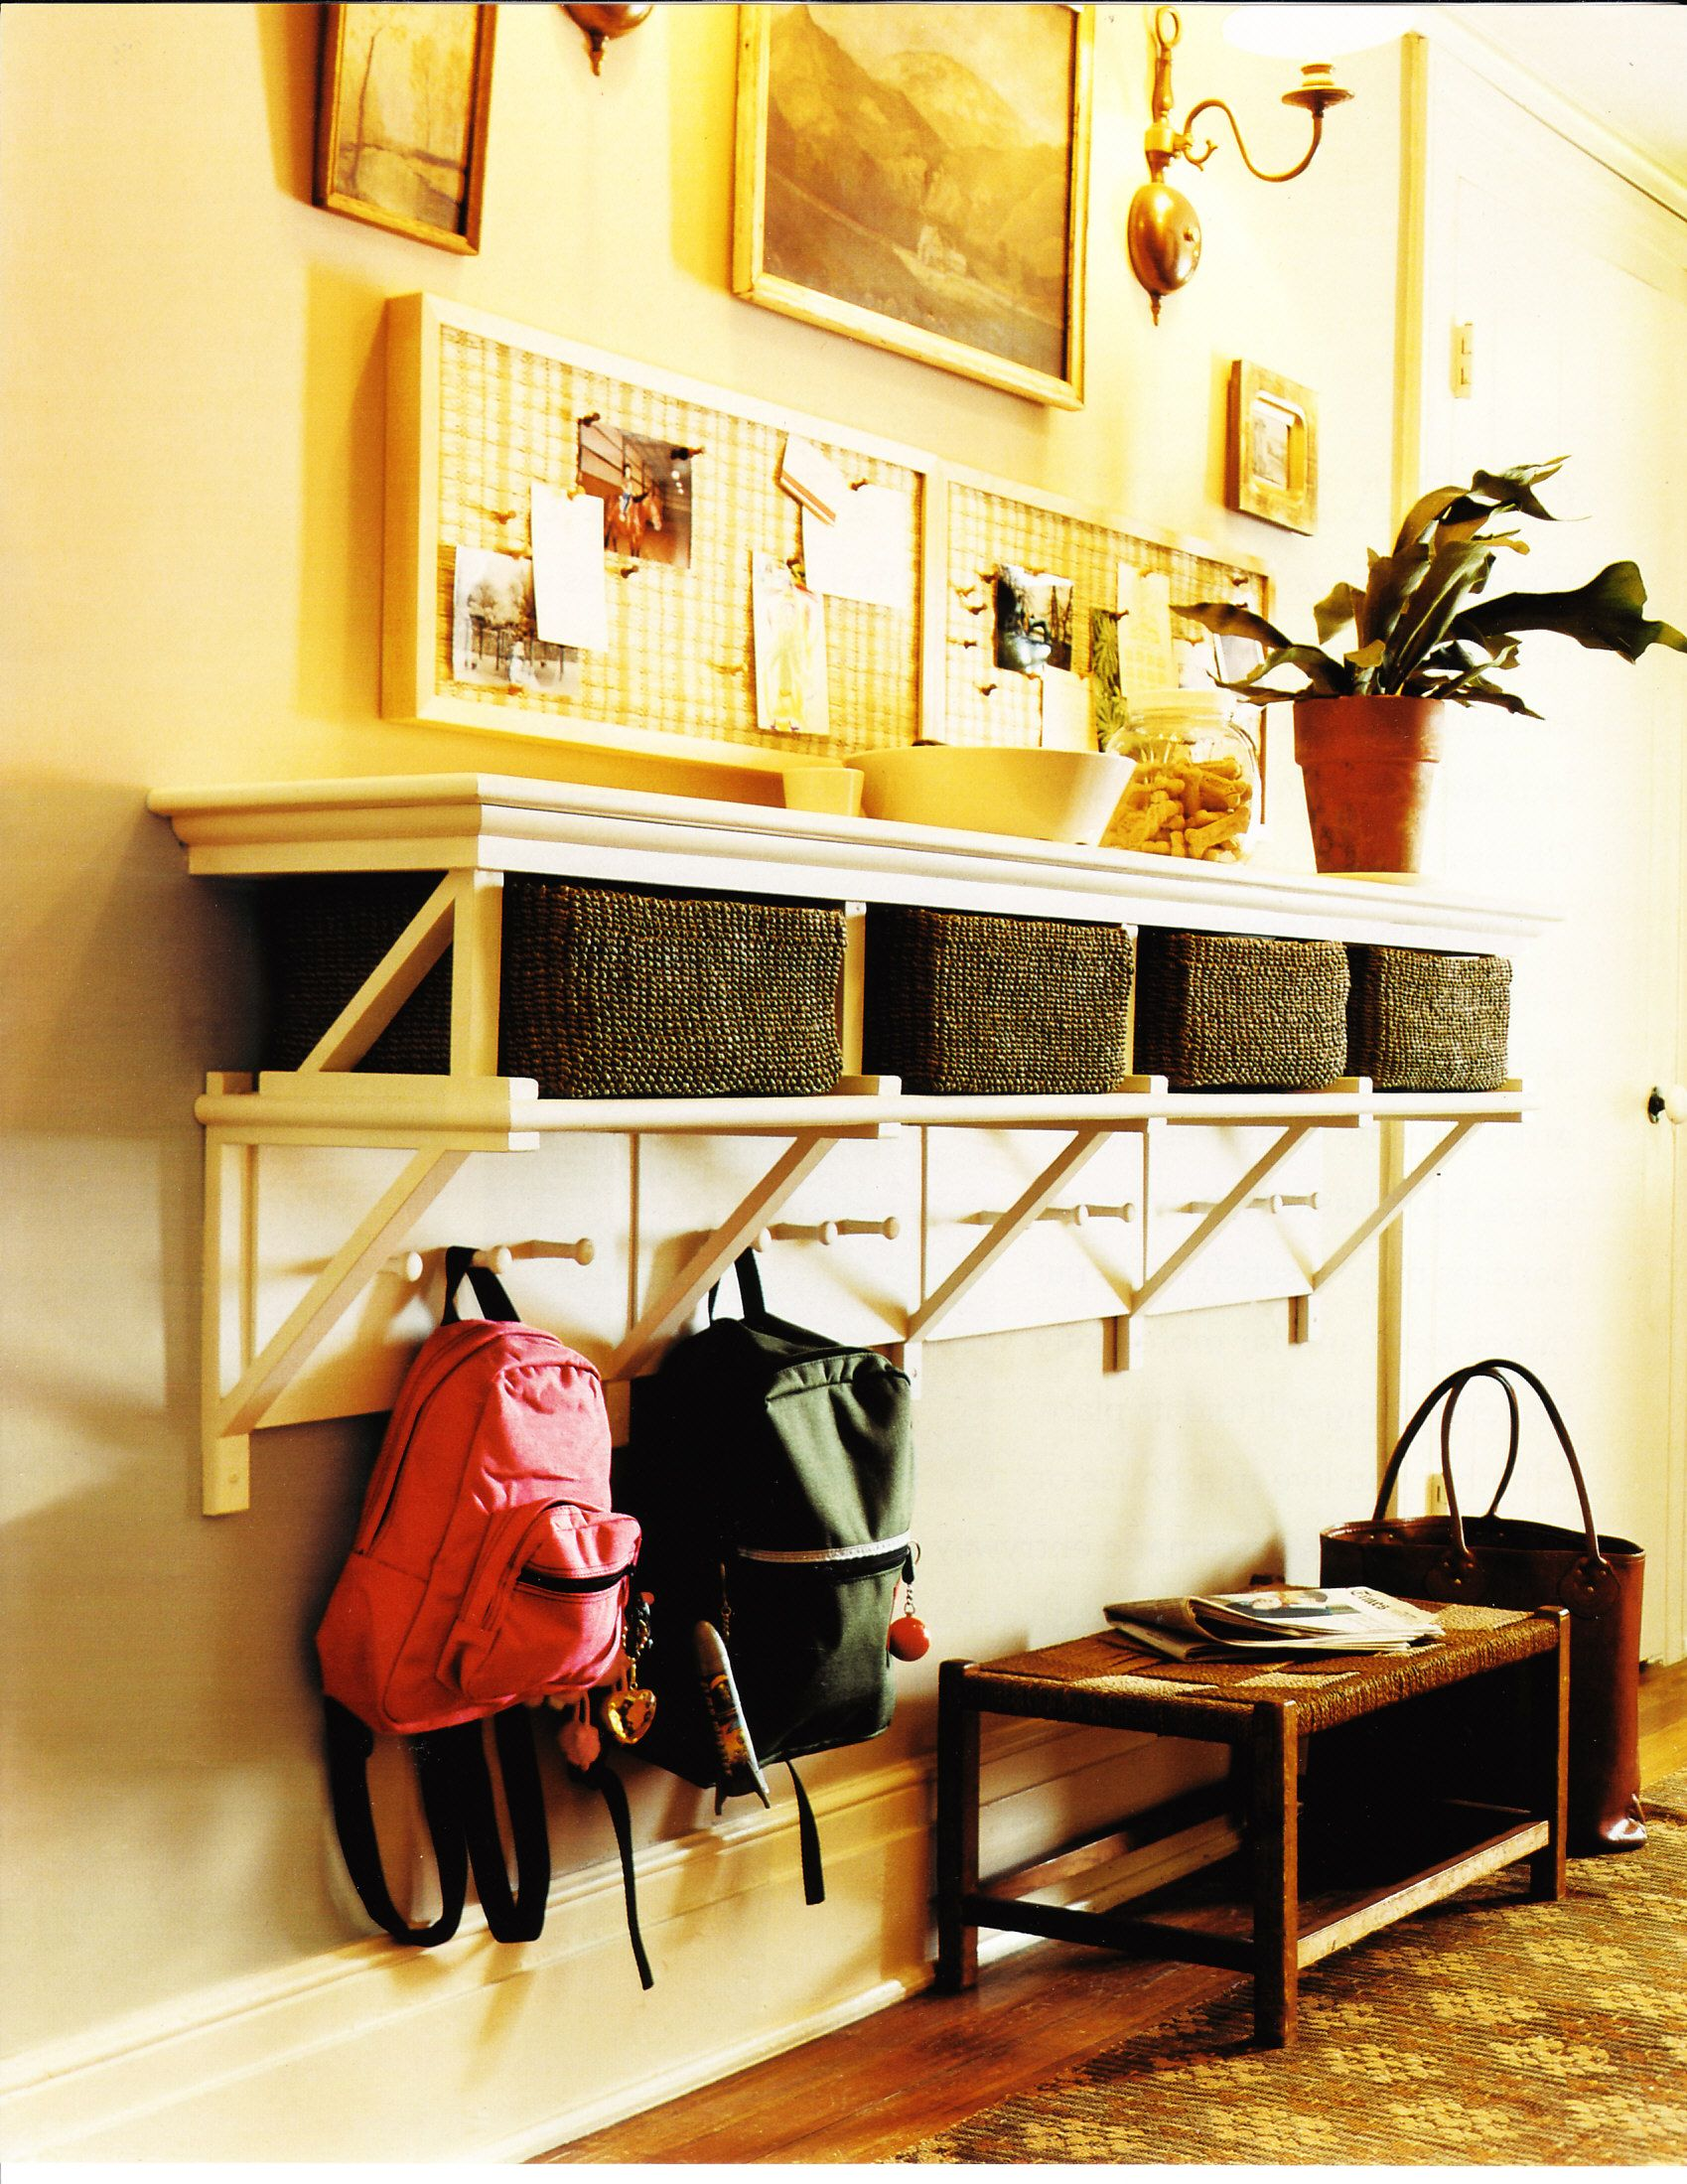 25 school bag storage ideas | Organizing, Spaces and Organizations